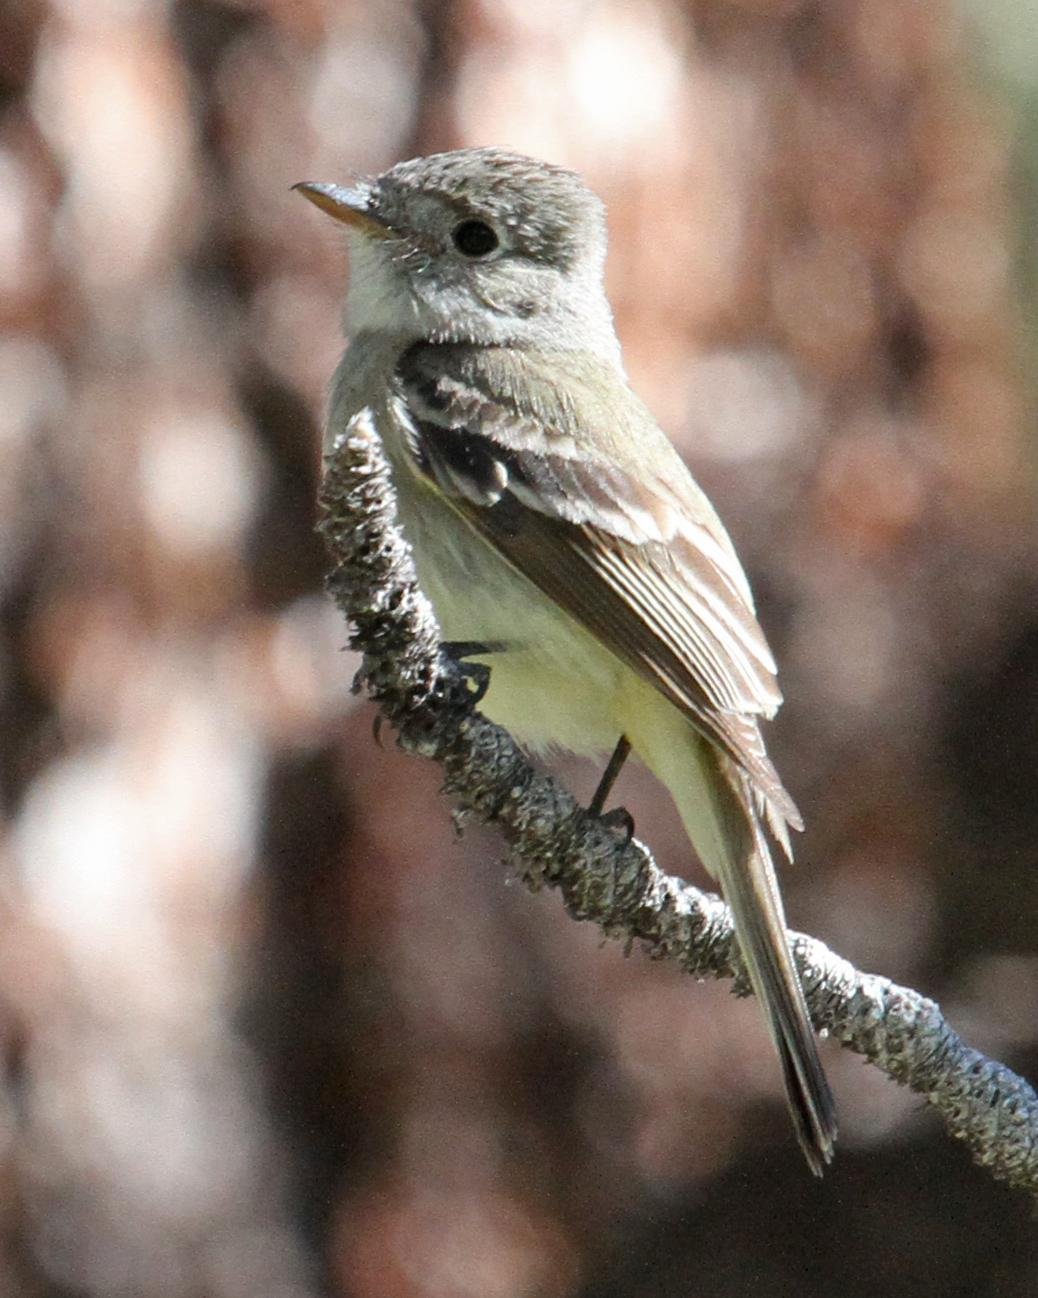 Dusky Flycatcher Photo by Jamie Chavez